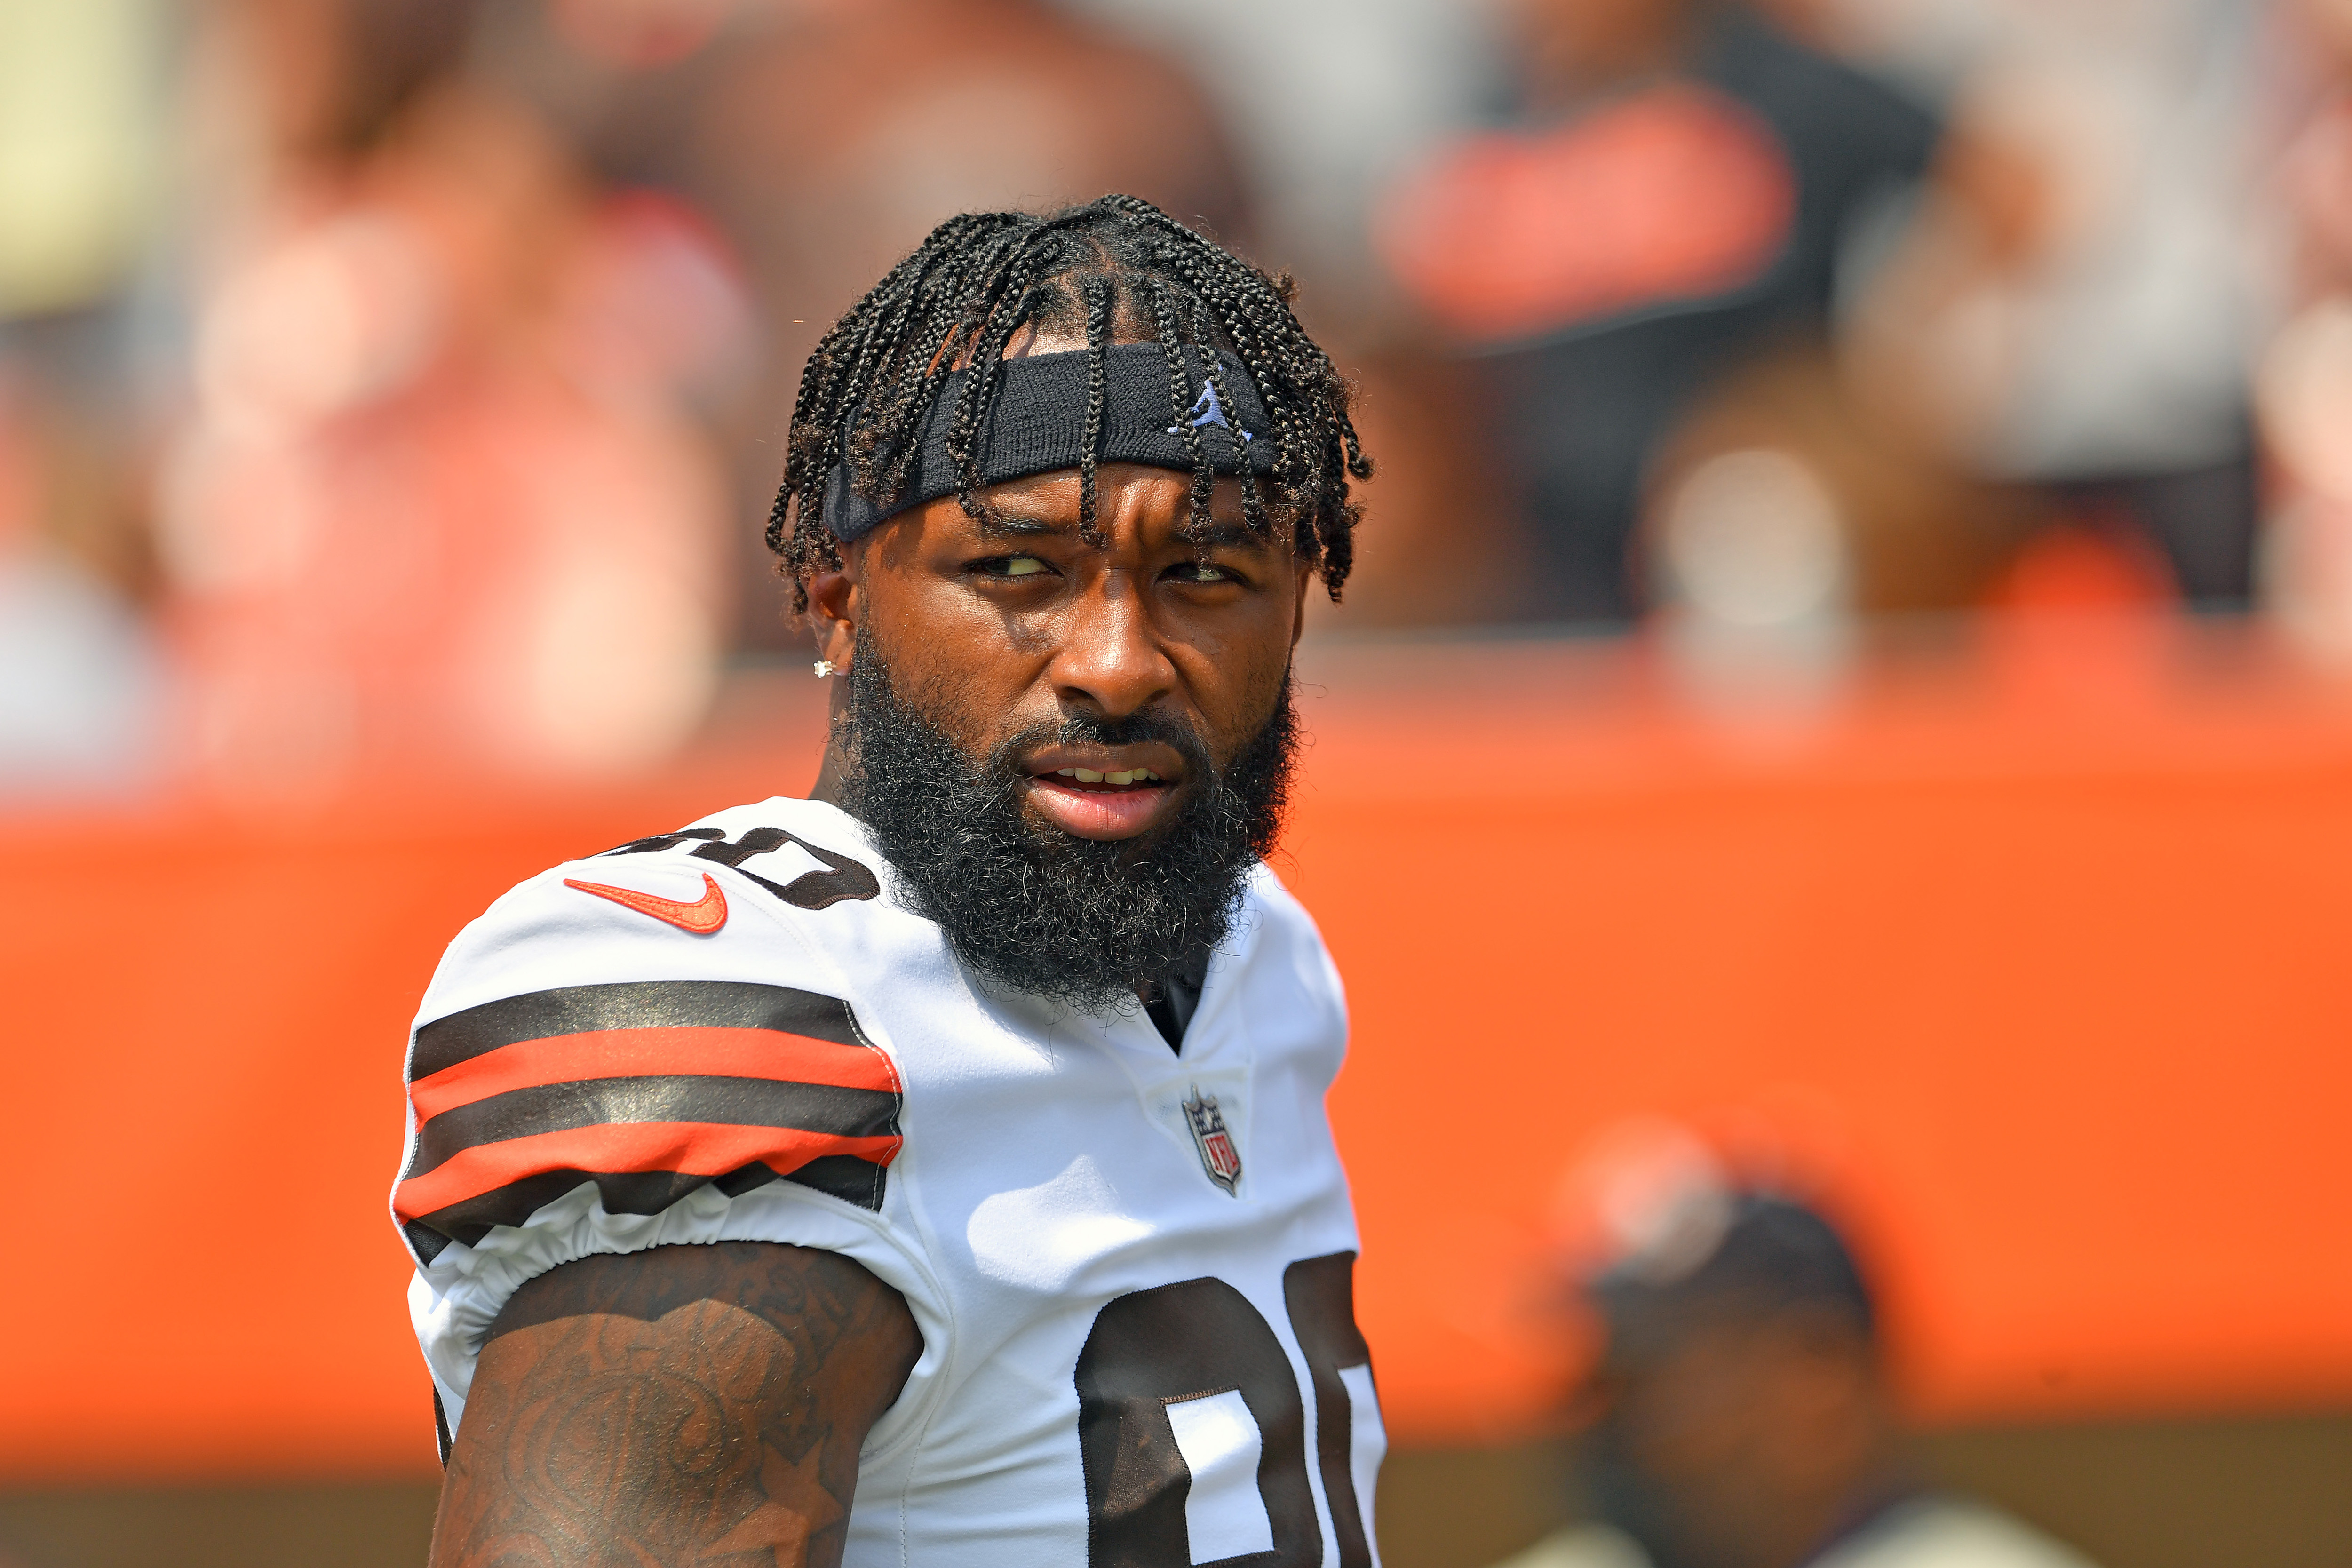 Wide receiver Jarvis Landry #80 of the Cleveland Browns walks onto the field during player introductions prior to the game against the New York Giants at FirstEnergy Stadium on August 22, 2021 in Cleveland, Ohio.